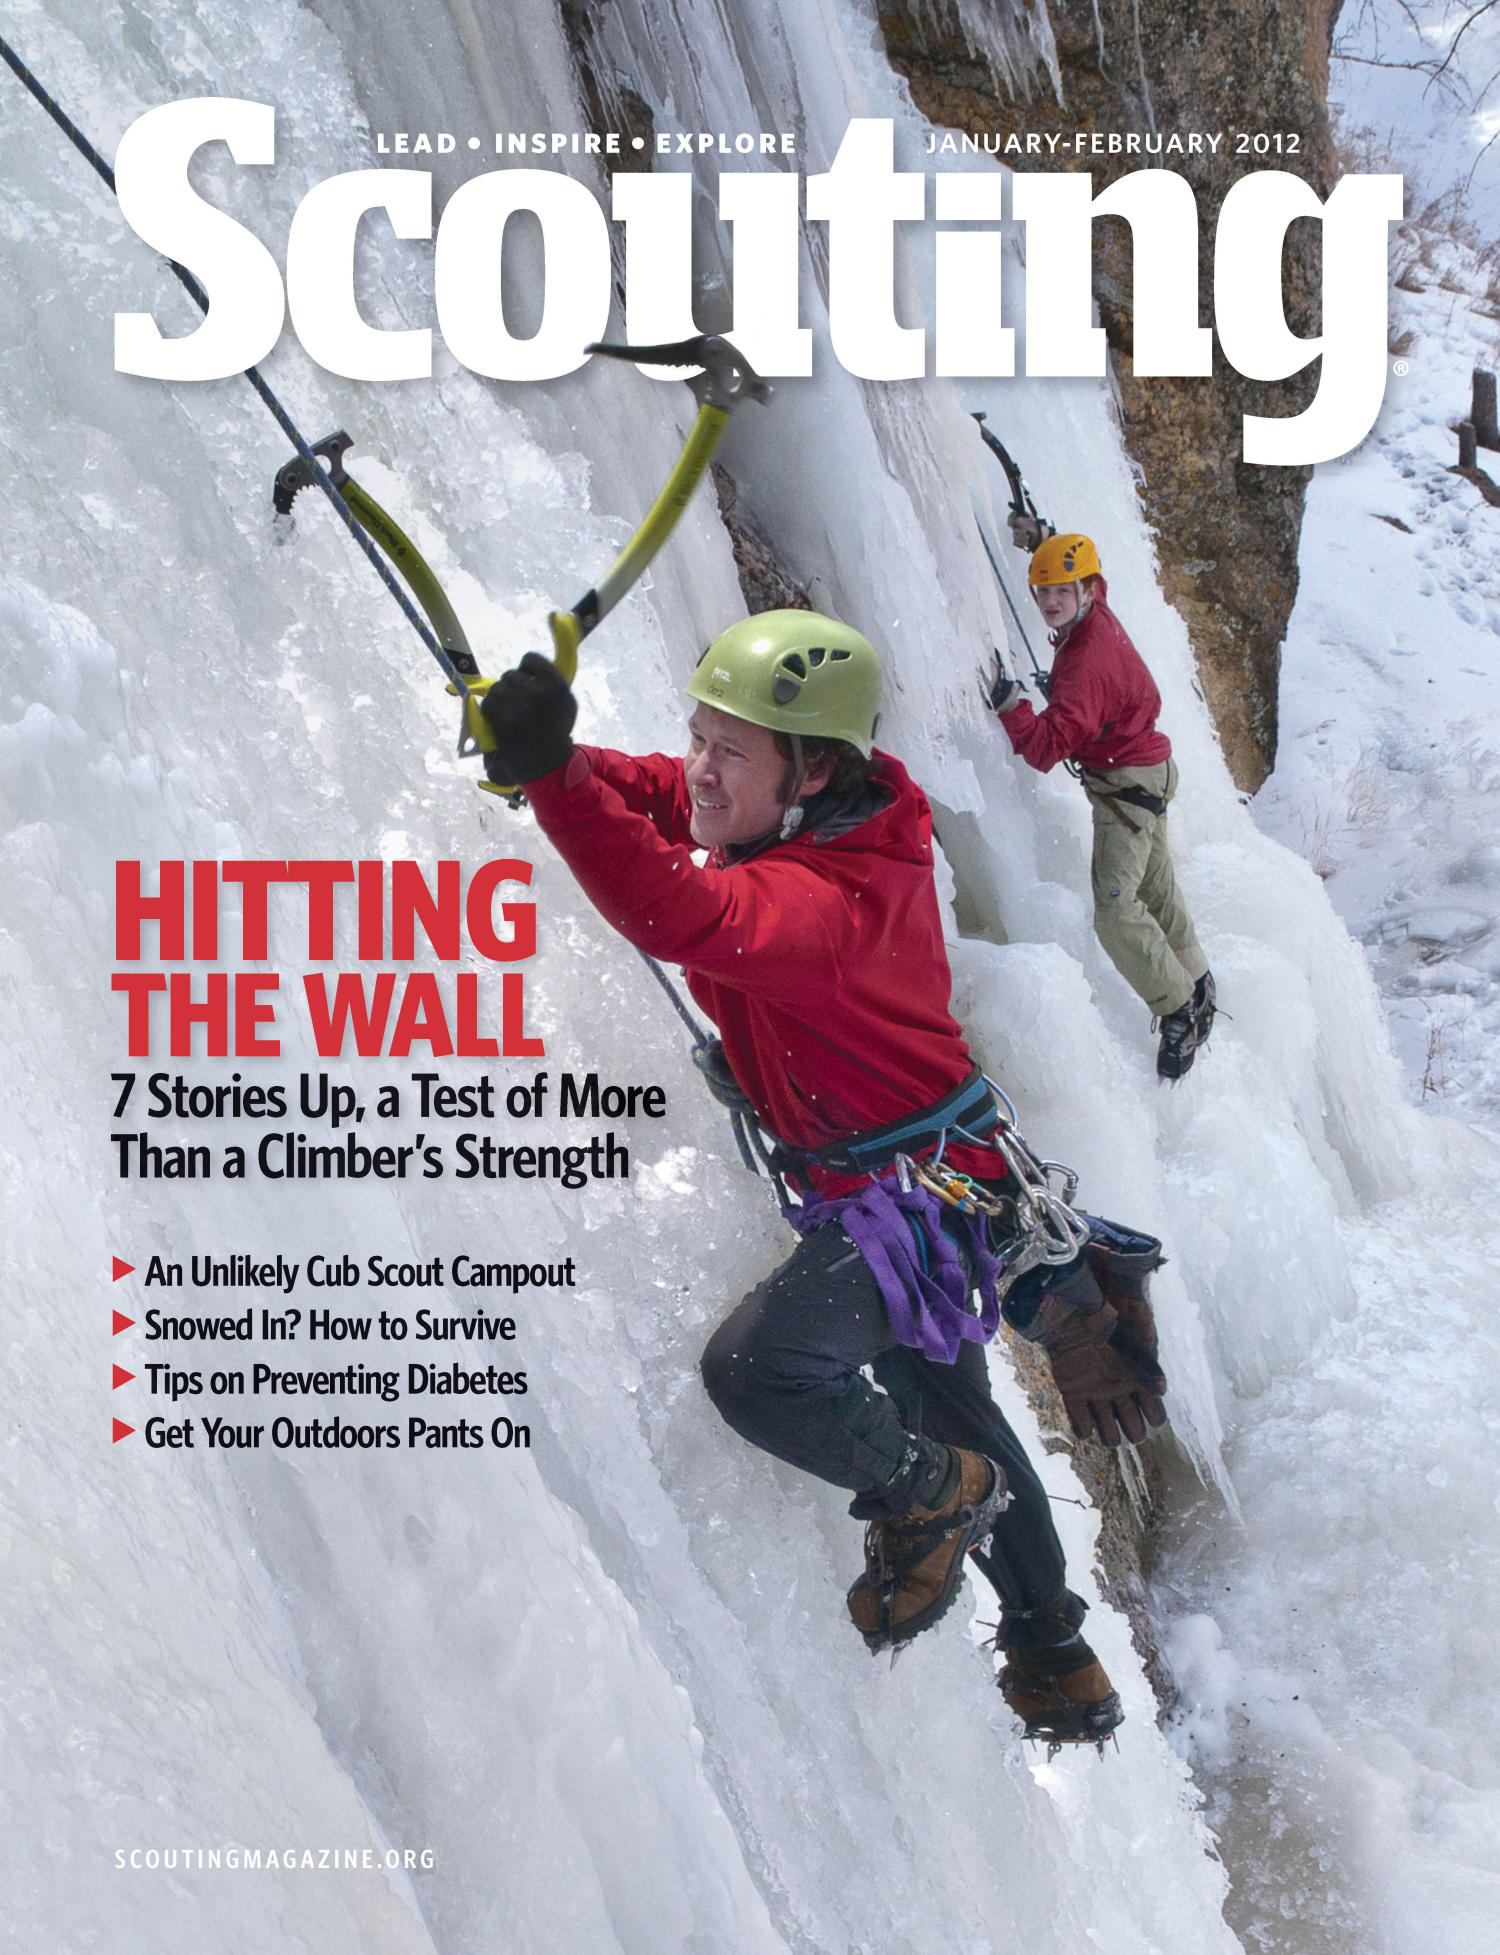 Scouting, Volume 100, Number 1, January-February 2012                                                                                                      Front Cover